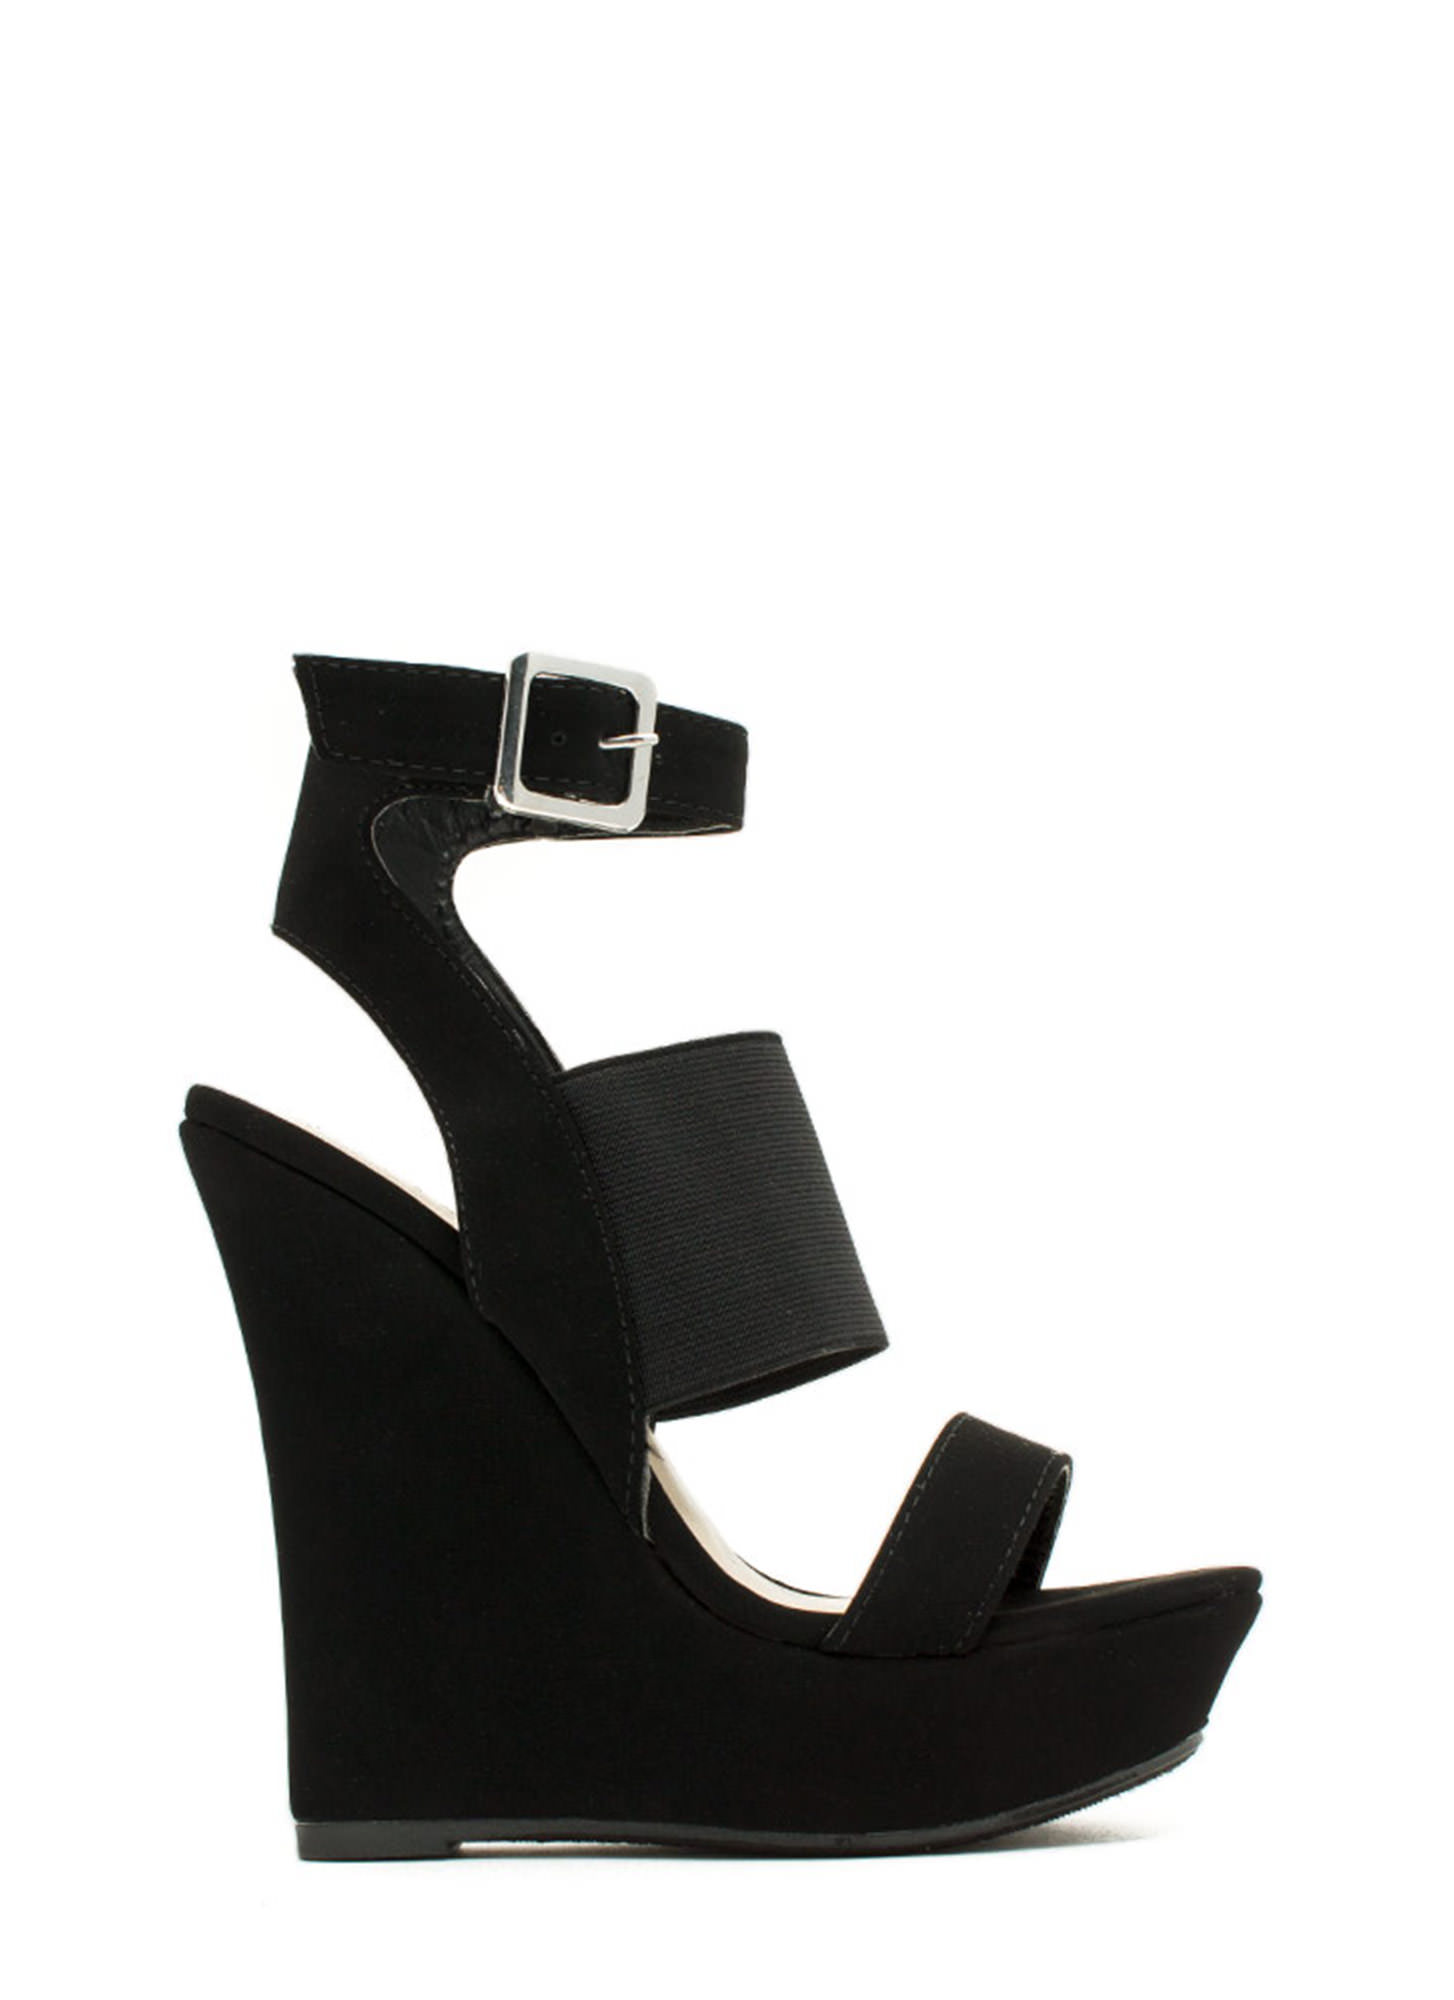 Pencil Me In Platform Wedges BLACK